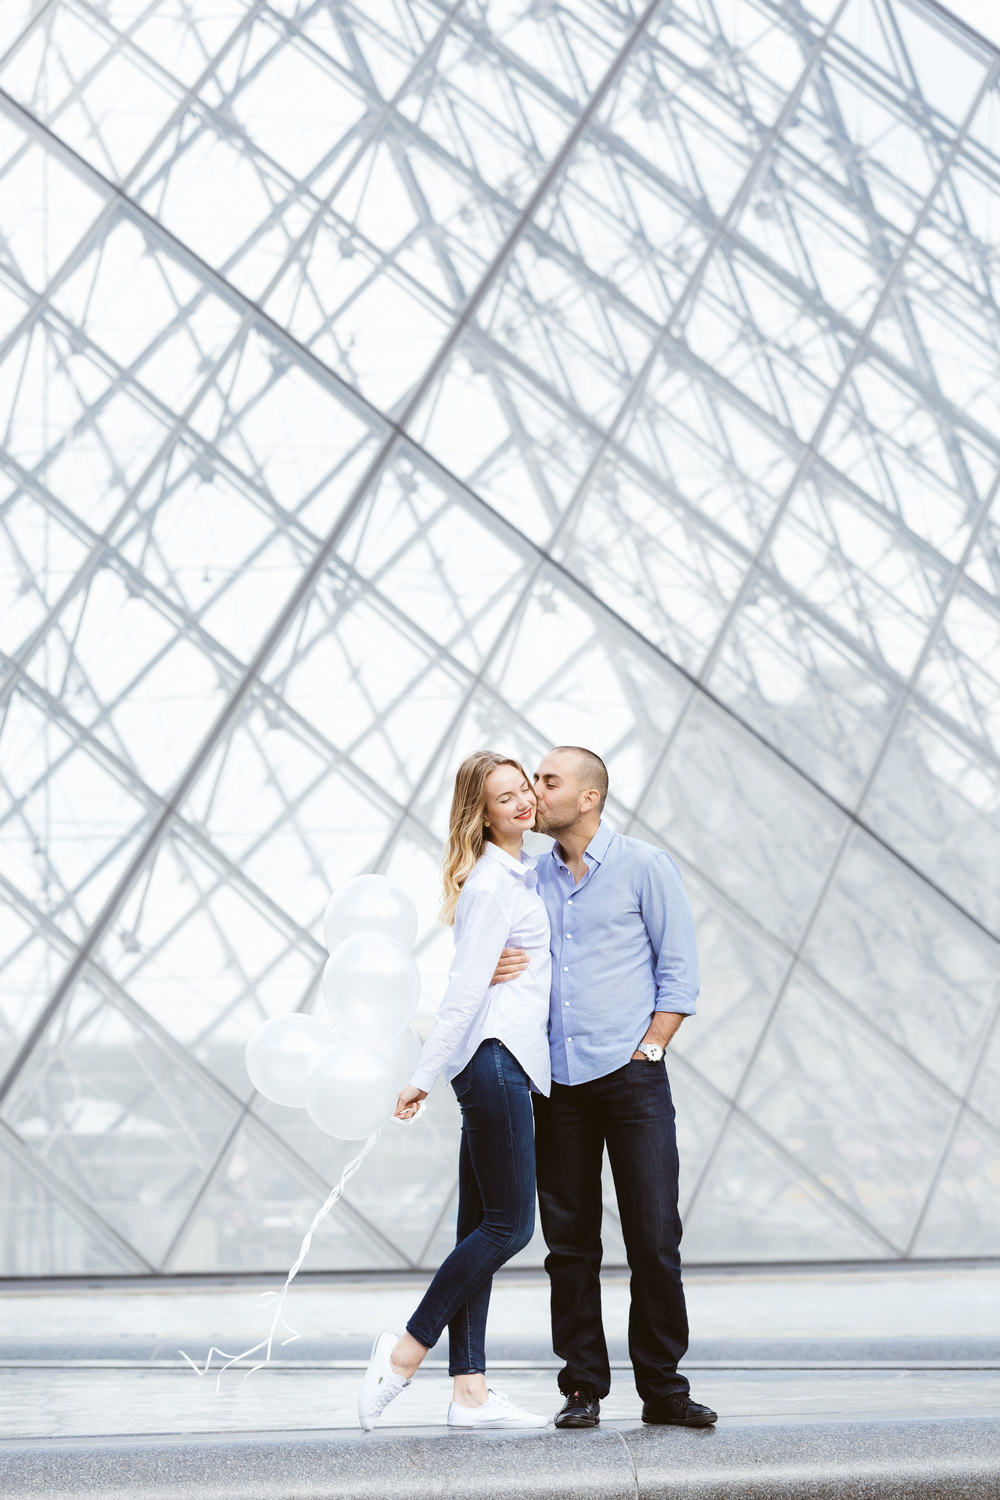 Paris Photographer Couple Session Iheartparisfr